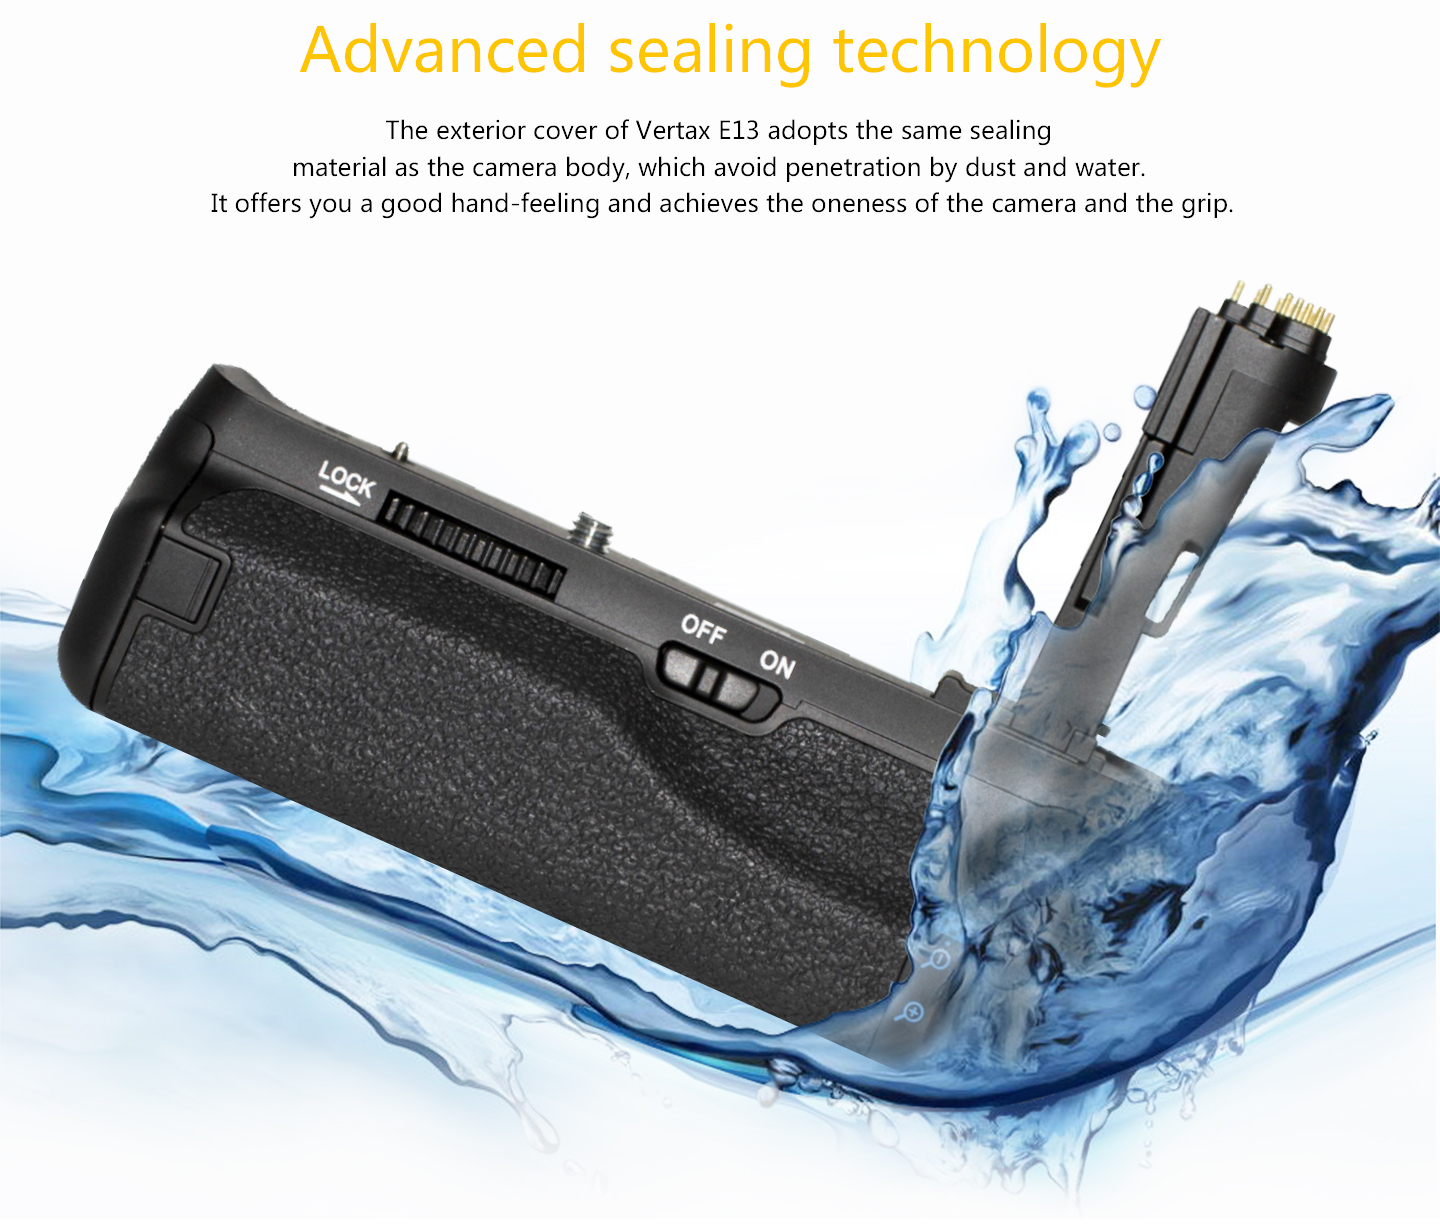 Advanced sealing technology